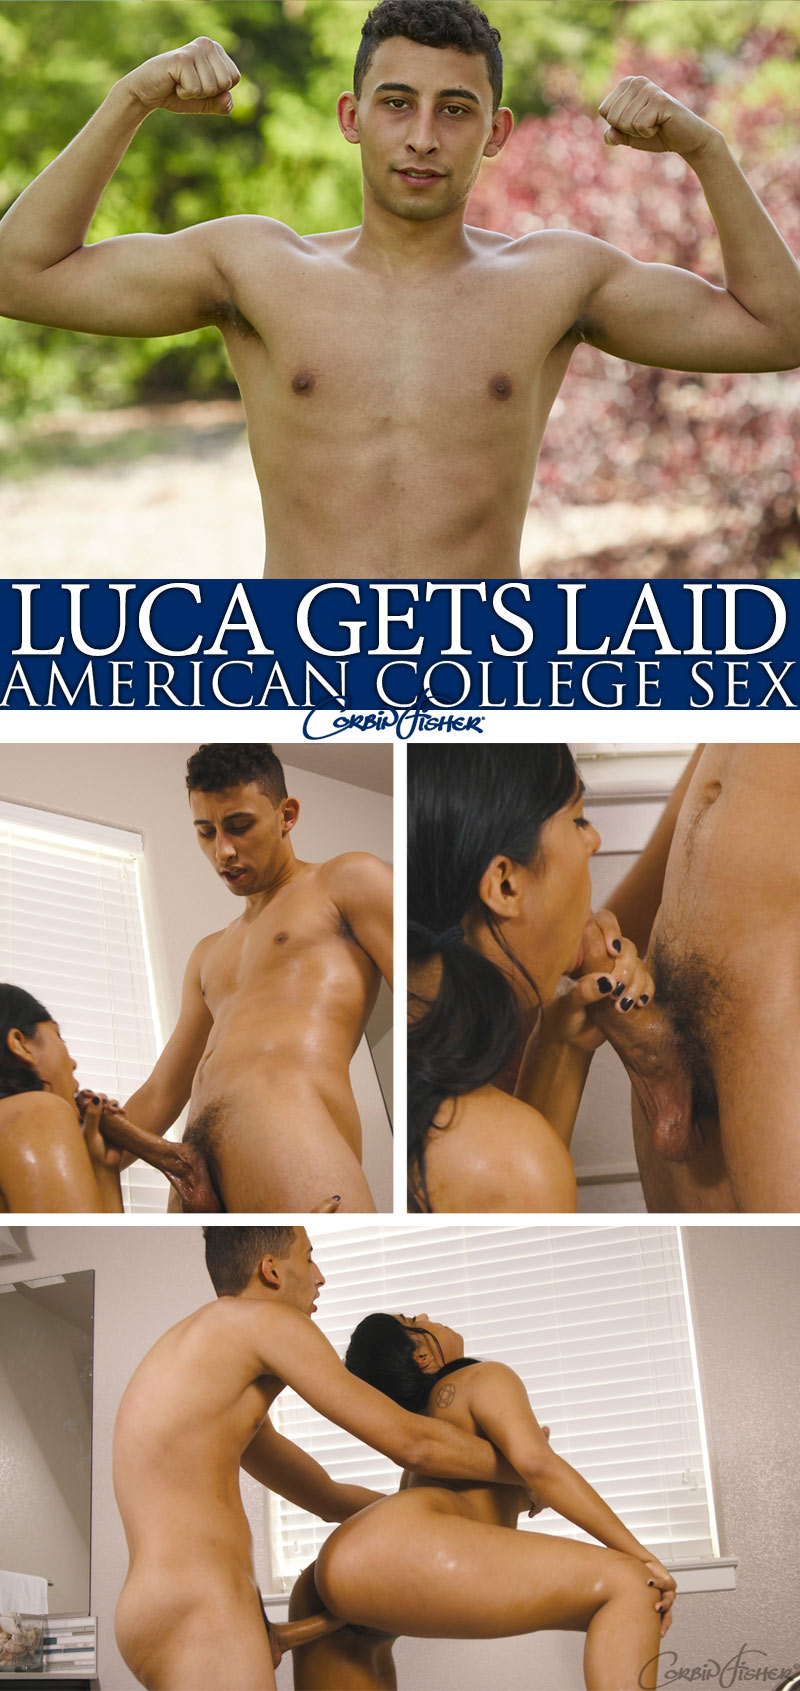 Luca Gets Laid at AmateurCollegeSex